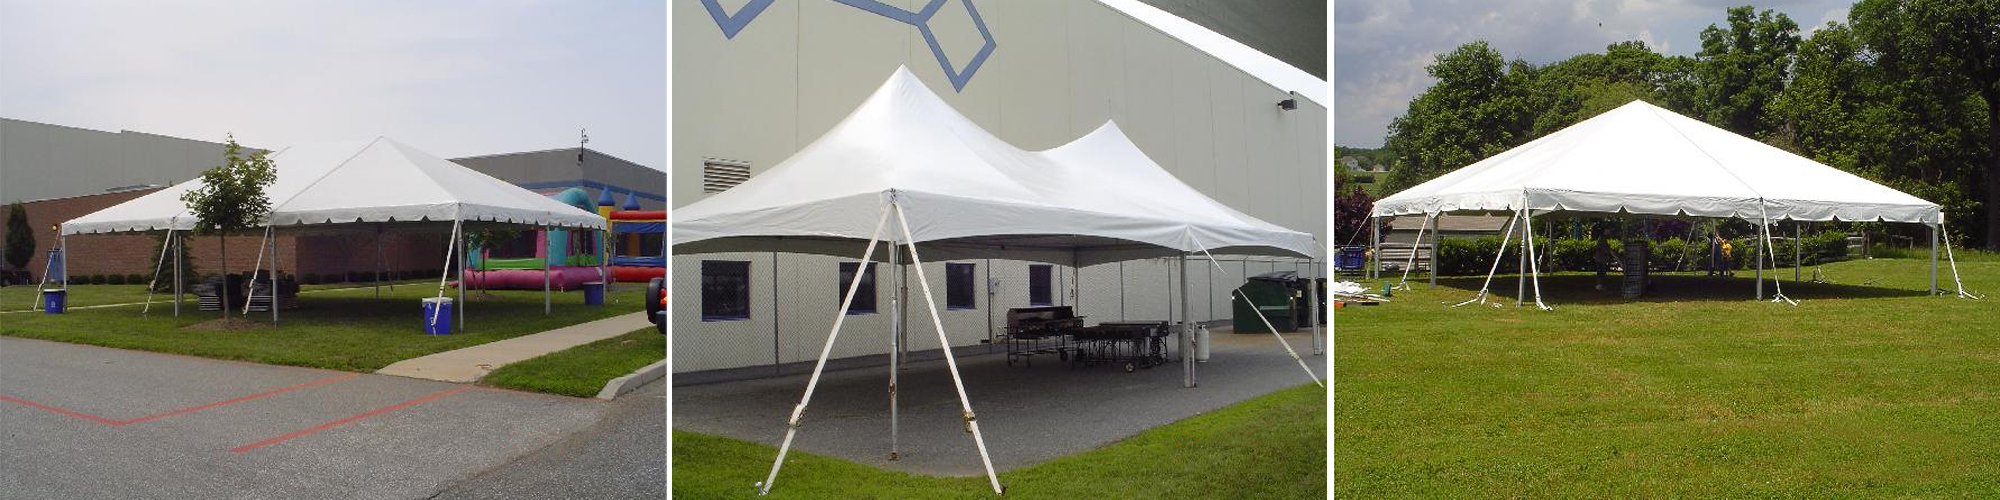 Tent And Party Rentals In Baltimore Md Party Palace